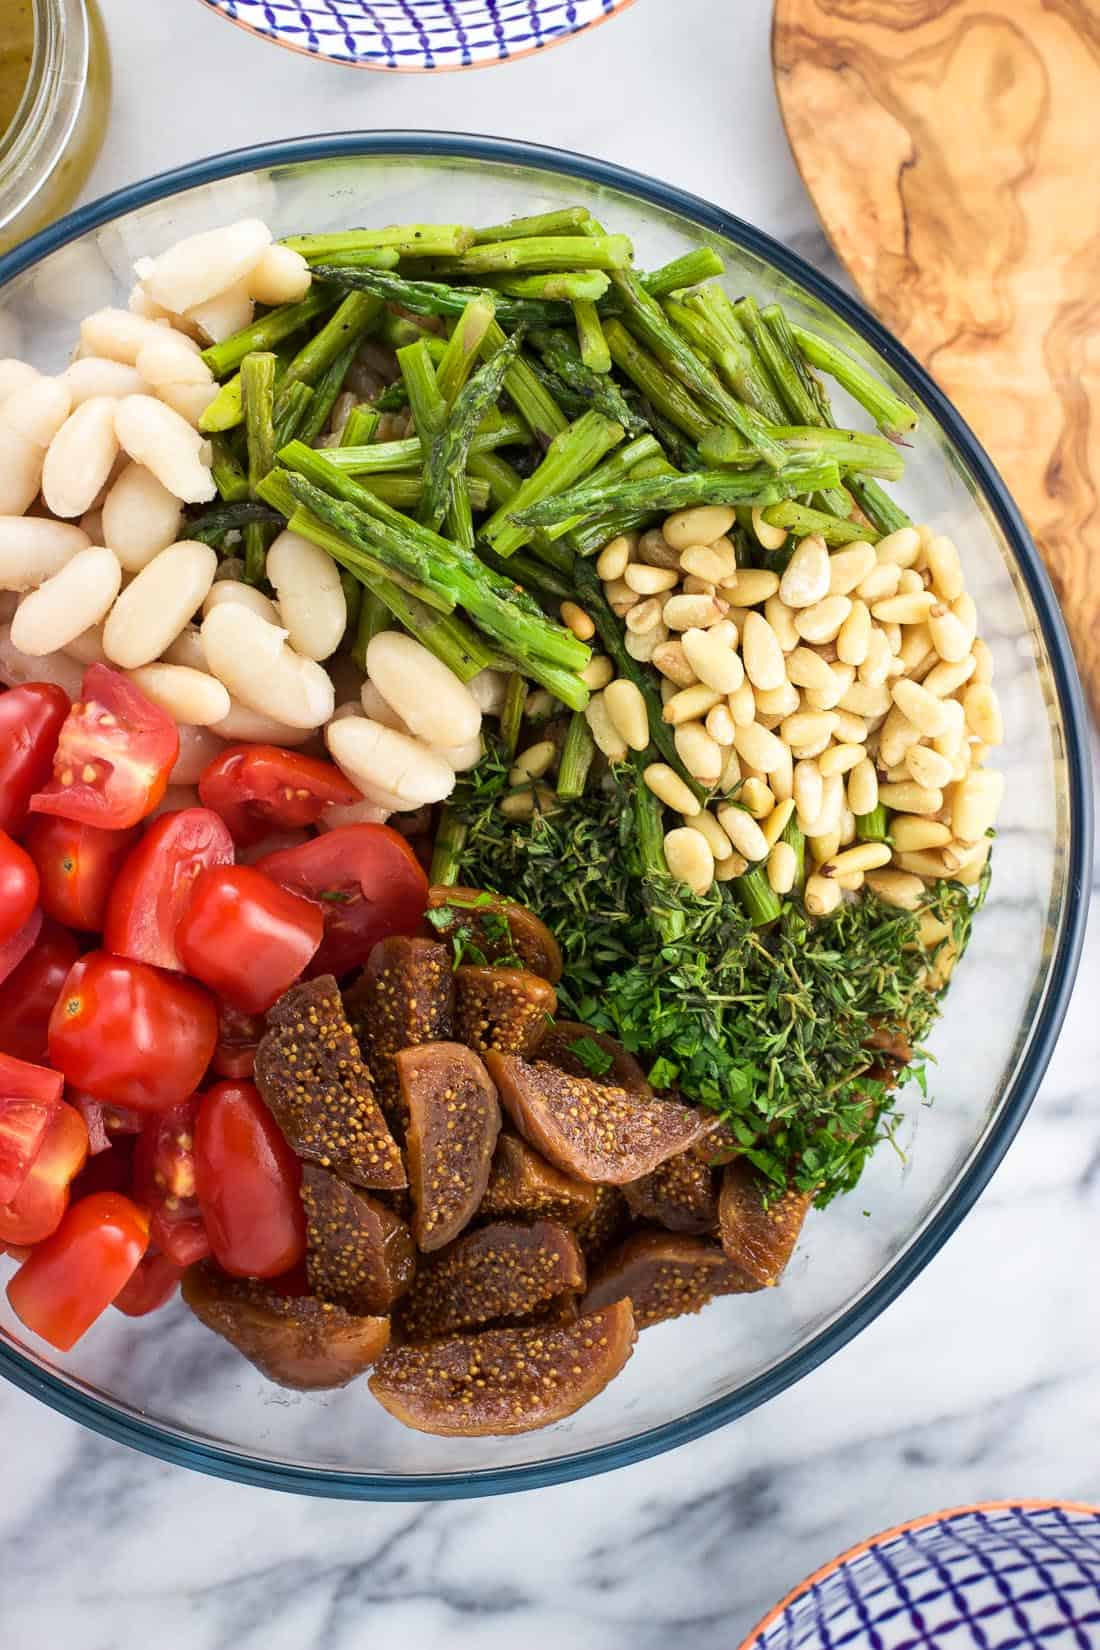 An overhead shot of tomatoes, white beans, asparagus, pine nuts, herbs, and figs on top of farro in a serving bowl before being mixed together.